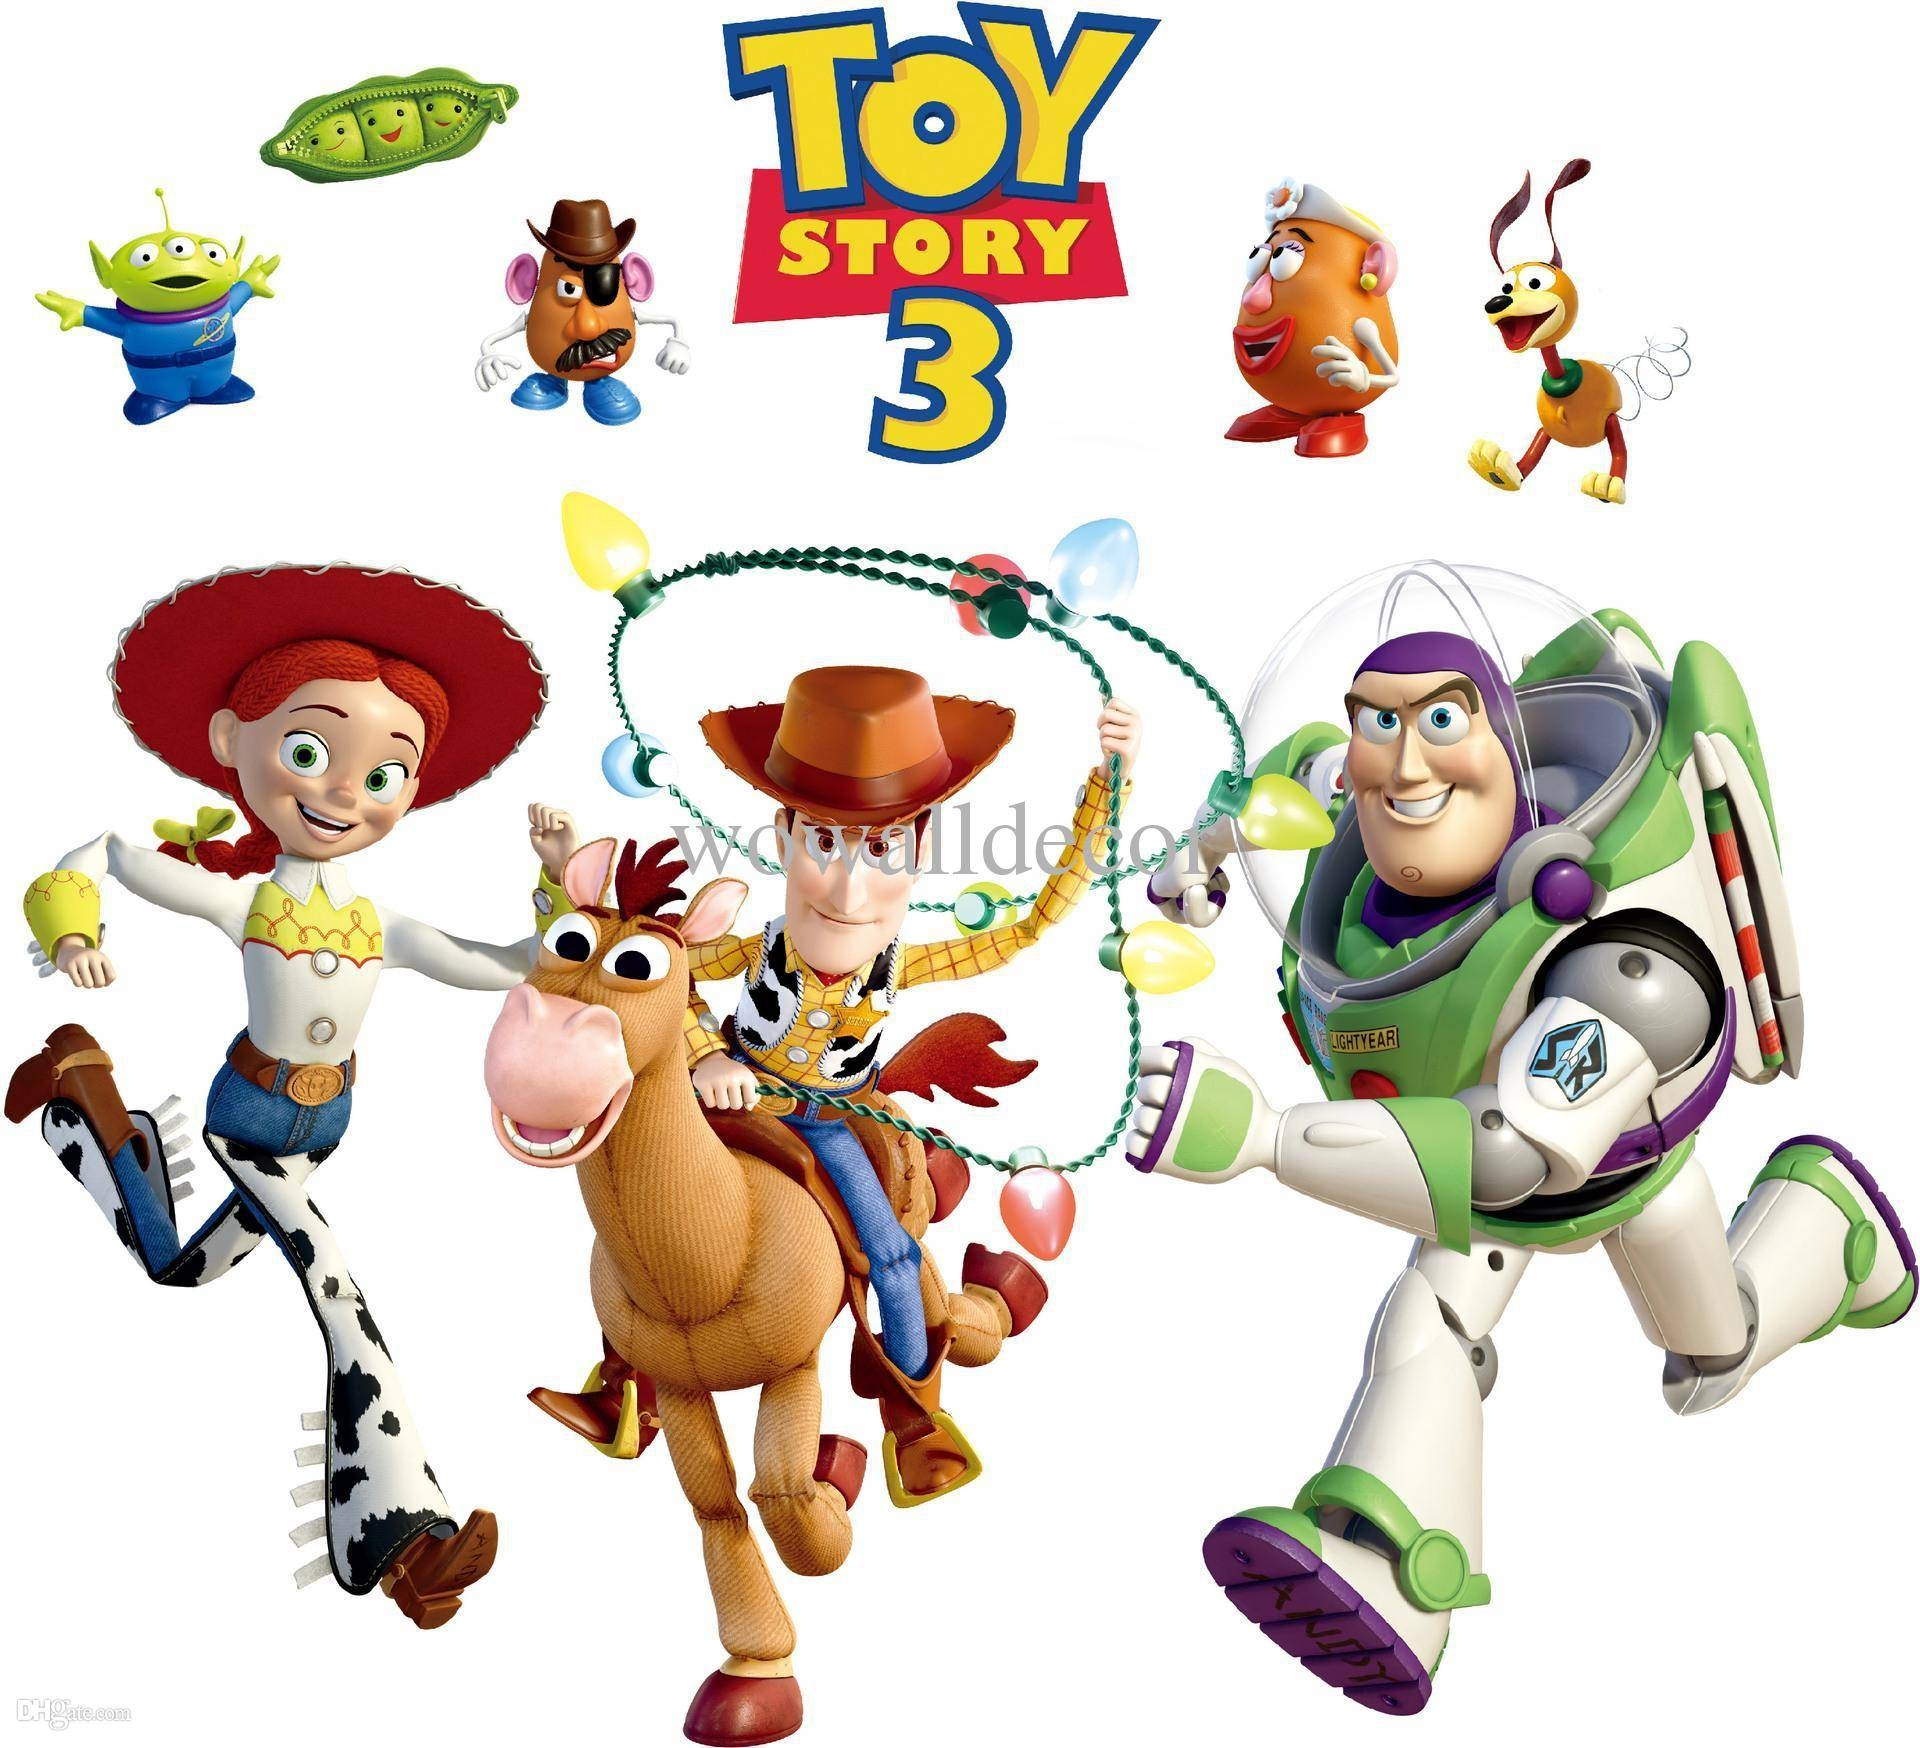 Removable Pvc Toy Story 3 Woody Bullseye Wall Sticker For Kids Inside Recent Toy Story Wall Art (View 10 of 30)